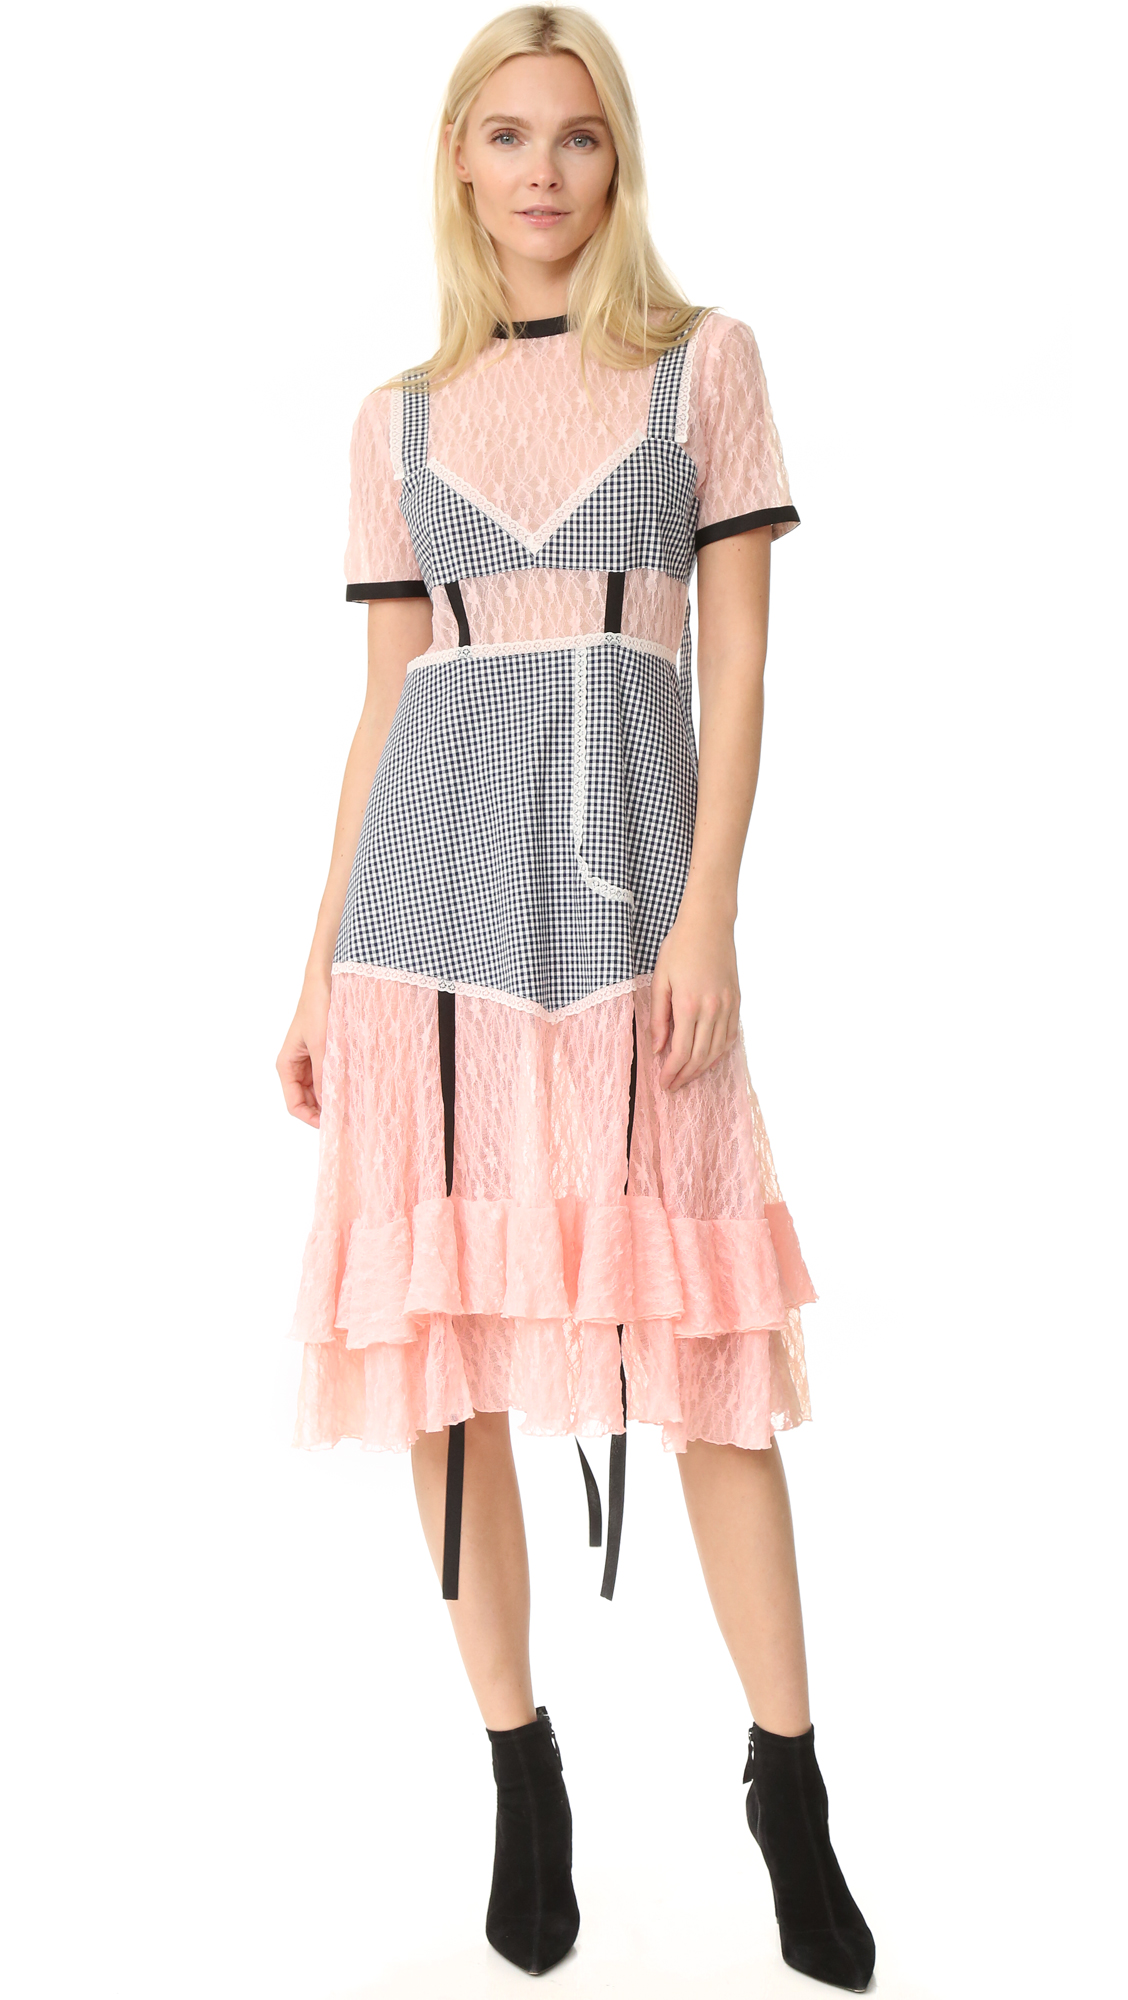 A mixed media Sandy Liang dress with gingham panels over sheer, two tone lace. Contrast fine ribbed banding at the crew neckline and arm openings. Concealed back zip. Unlined. Fabric: Lace / plain weave. Shell: 97% cotton/3% elastane.